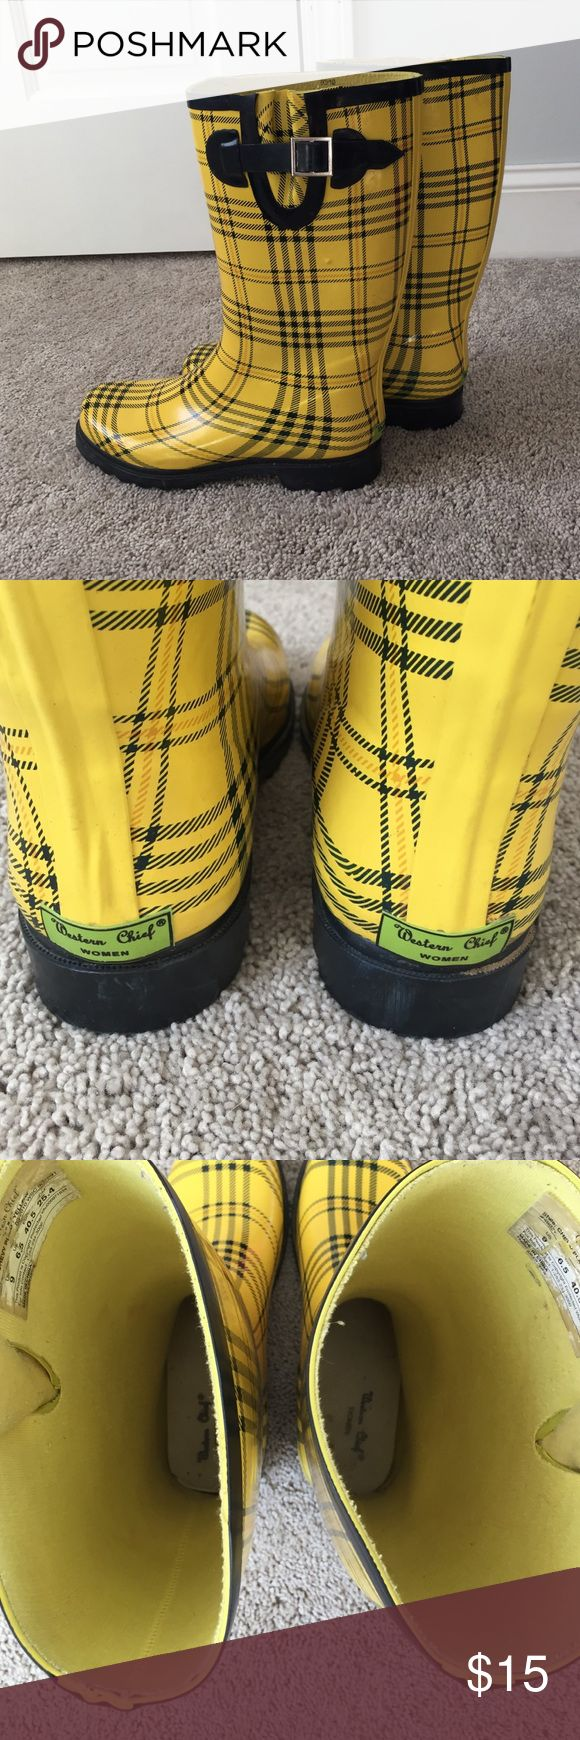 Western chief rain boots Rain boots in good used condition. A lot of life left! Western Chief Shoes Winter & Rain Boots